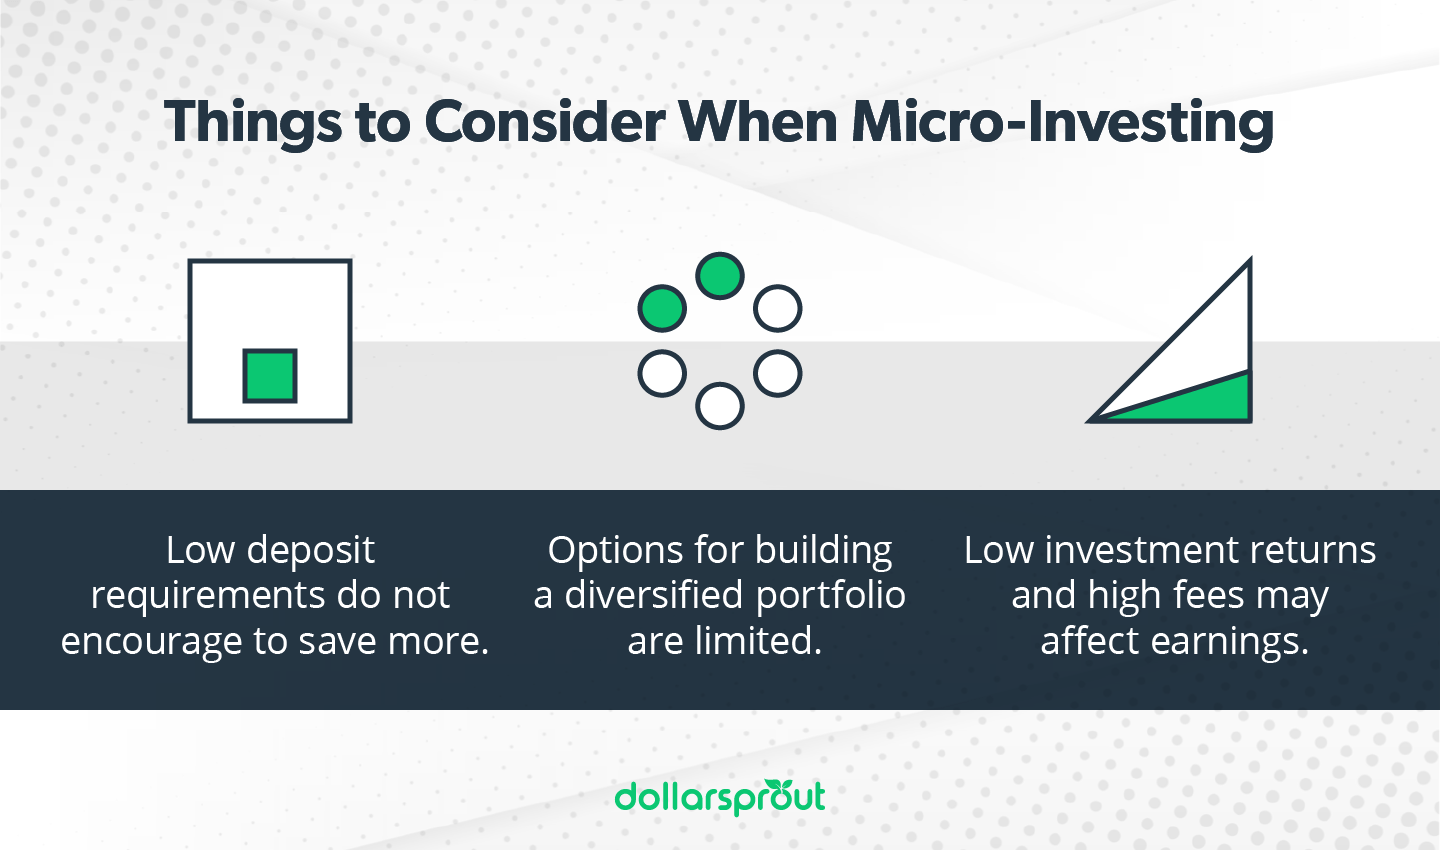 Things to Consider When Micro-Investing